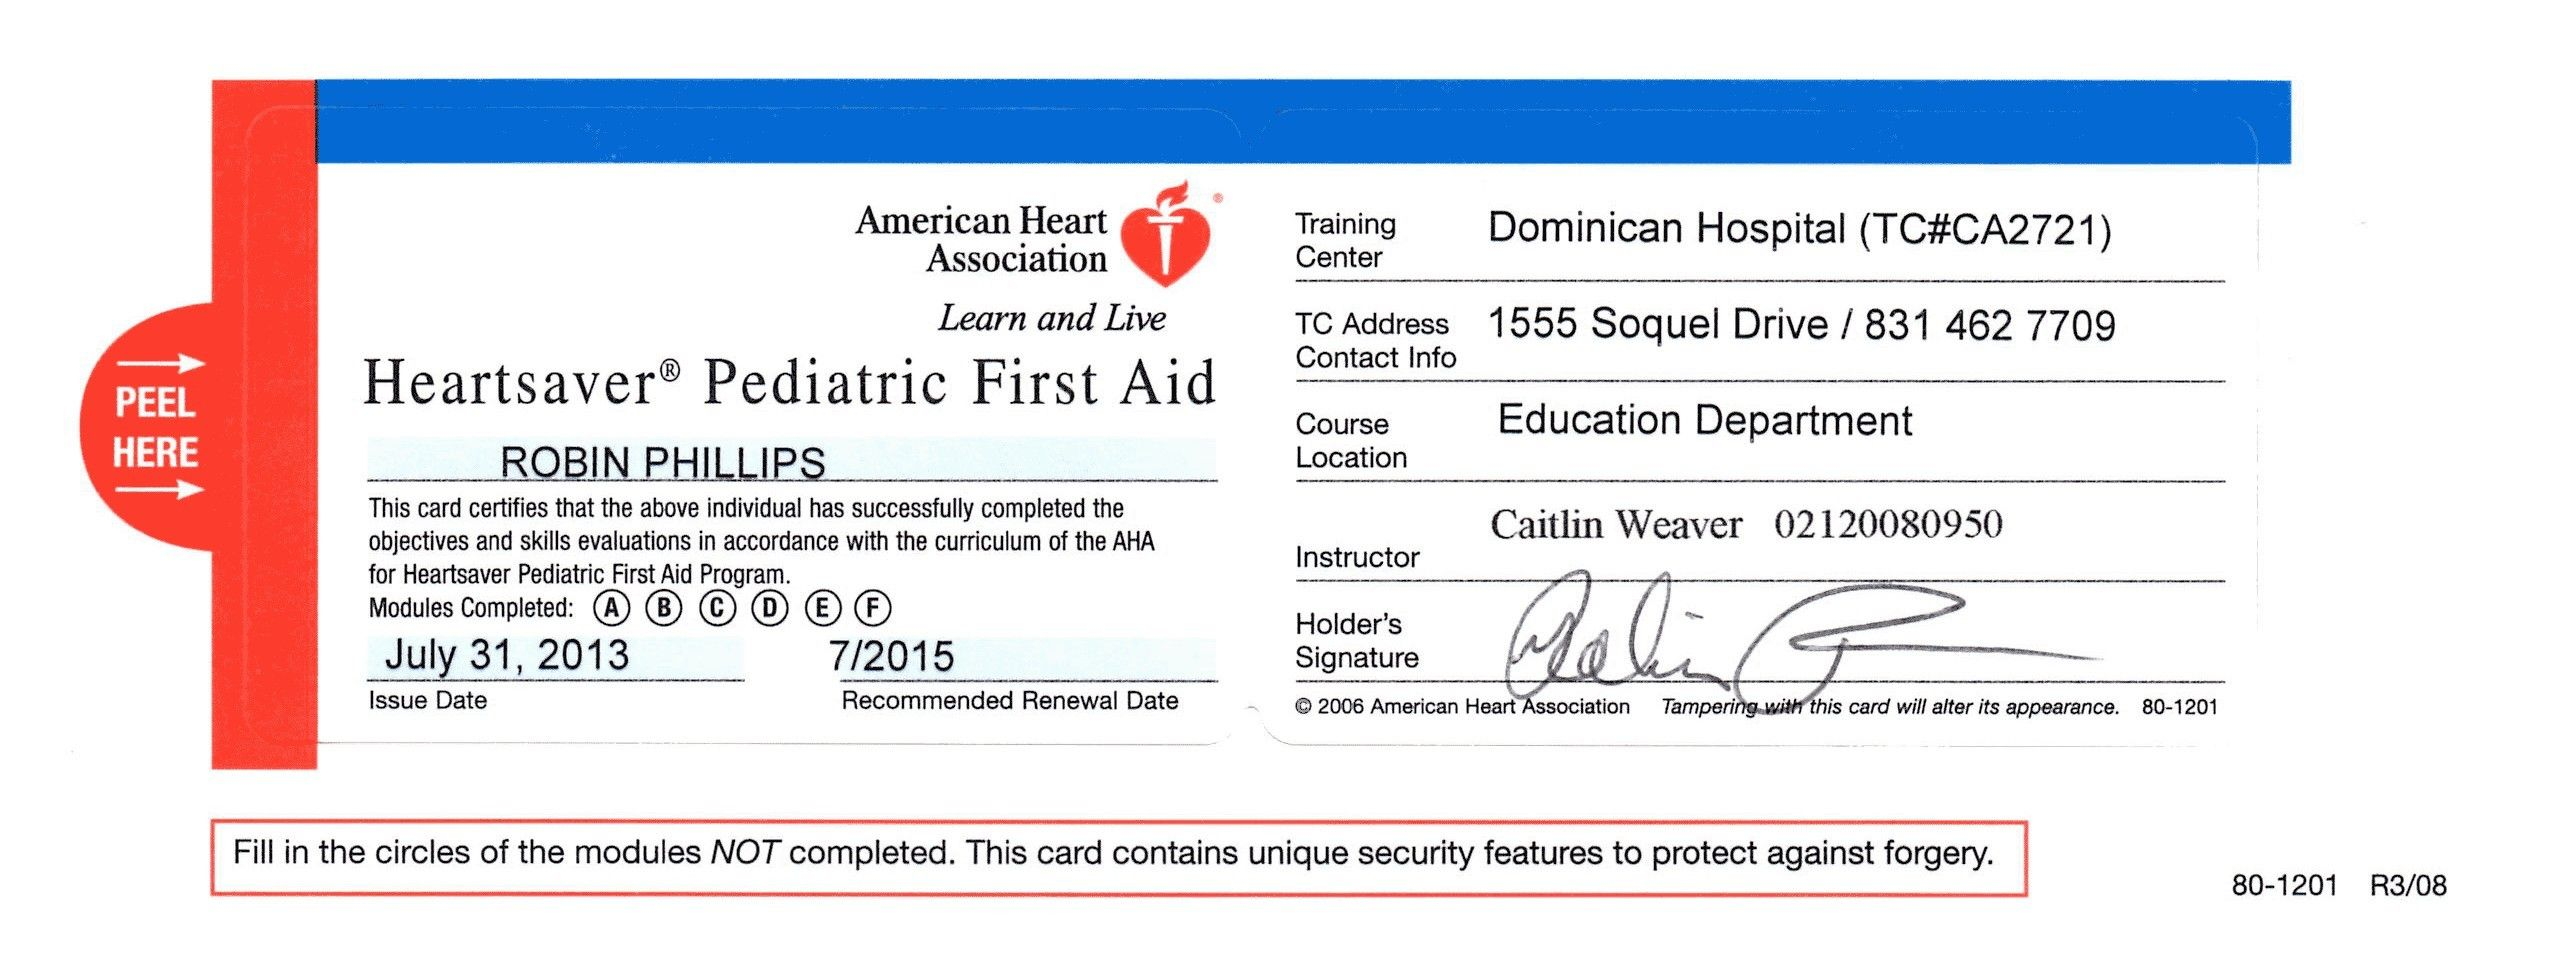 First Aid Certificate Template Free Certification Cpr Card Template In 2021 Cpr Card Certificate Templates Business Card Templates Download